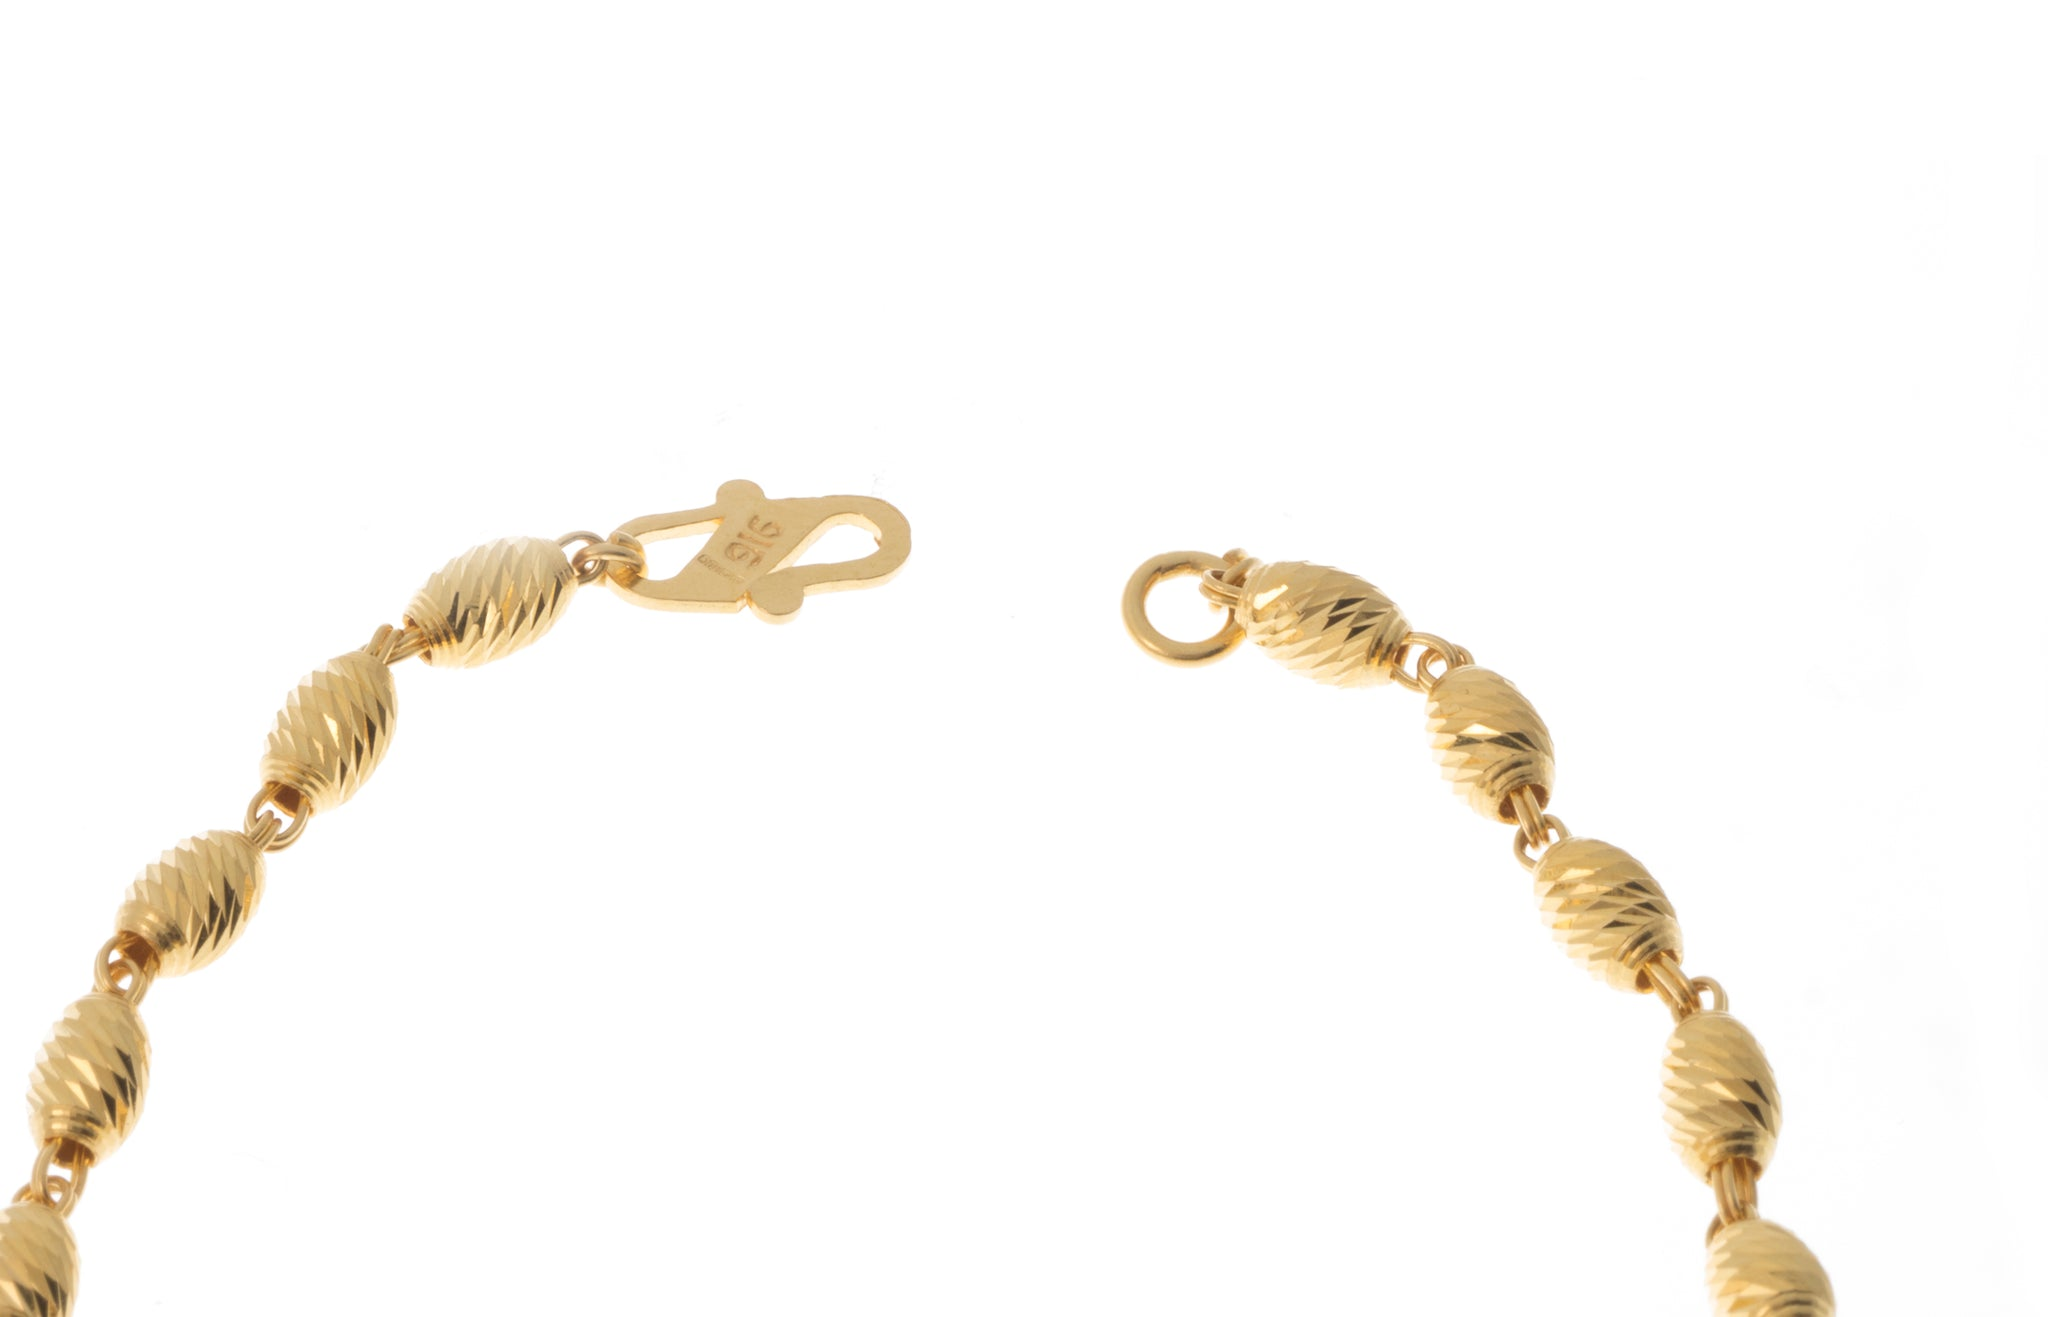 22ct Gold Bracelet with Diamond Cut Design (6g) LBR-7392